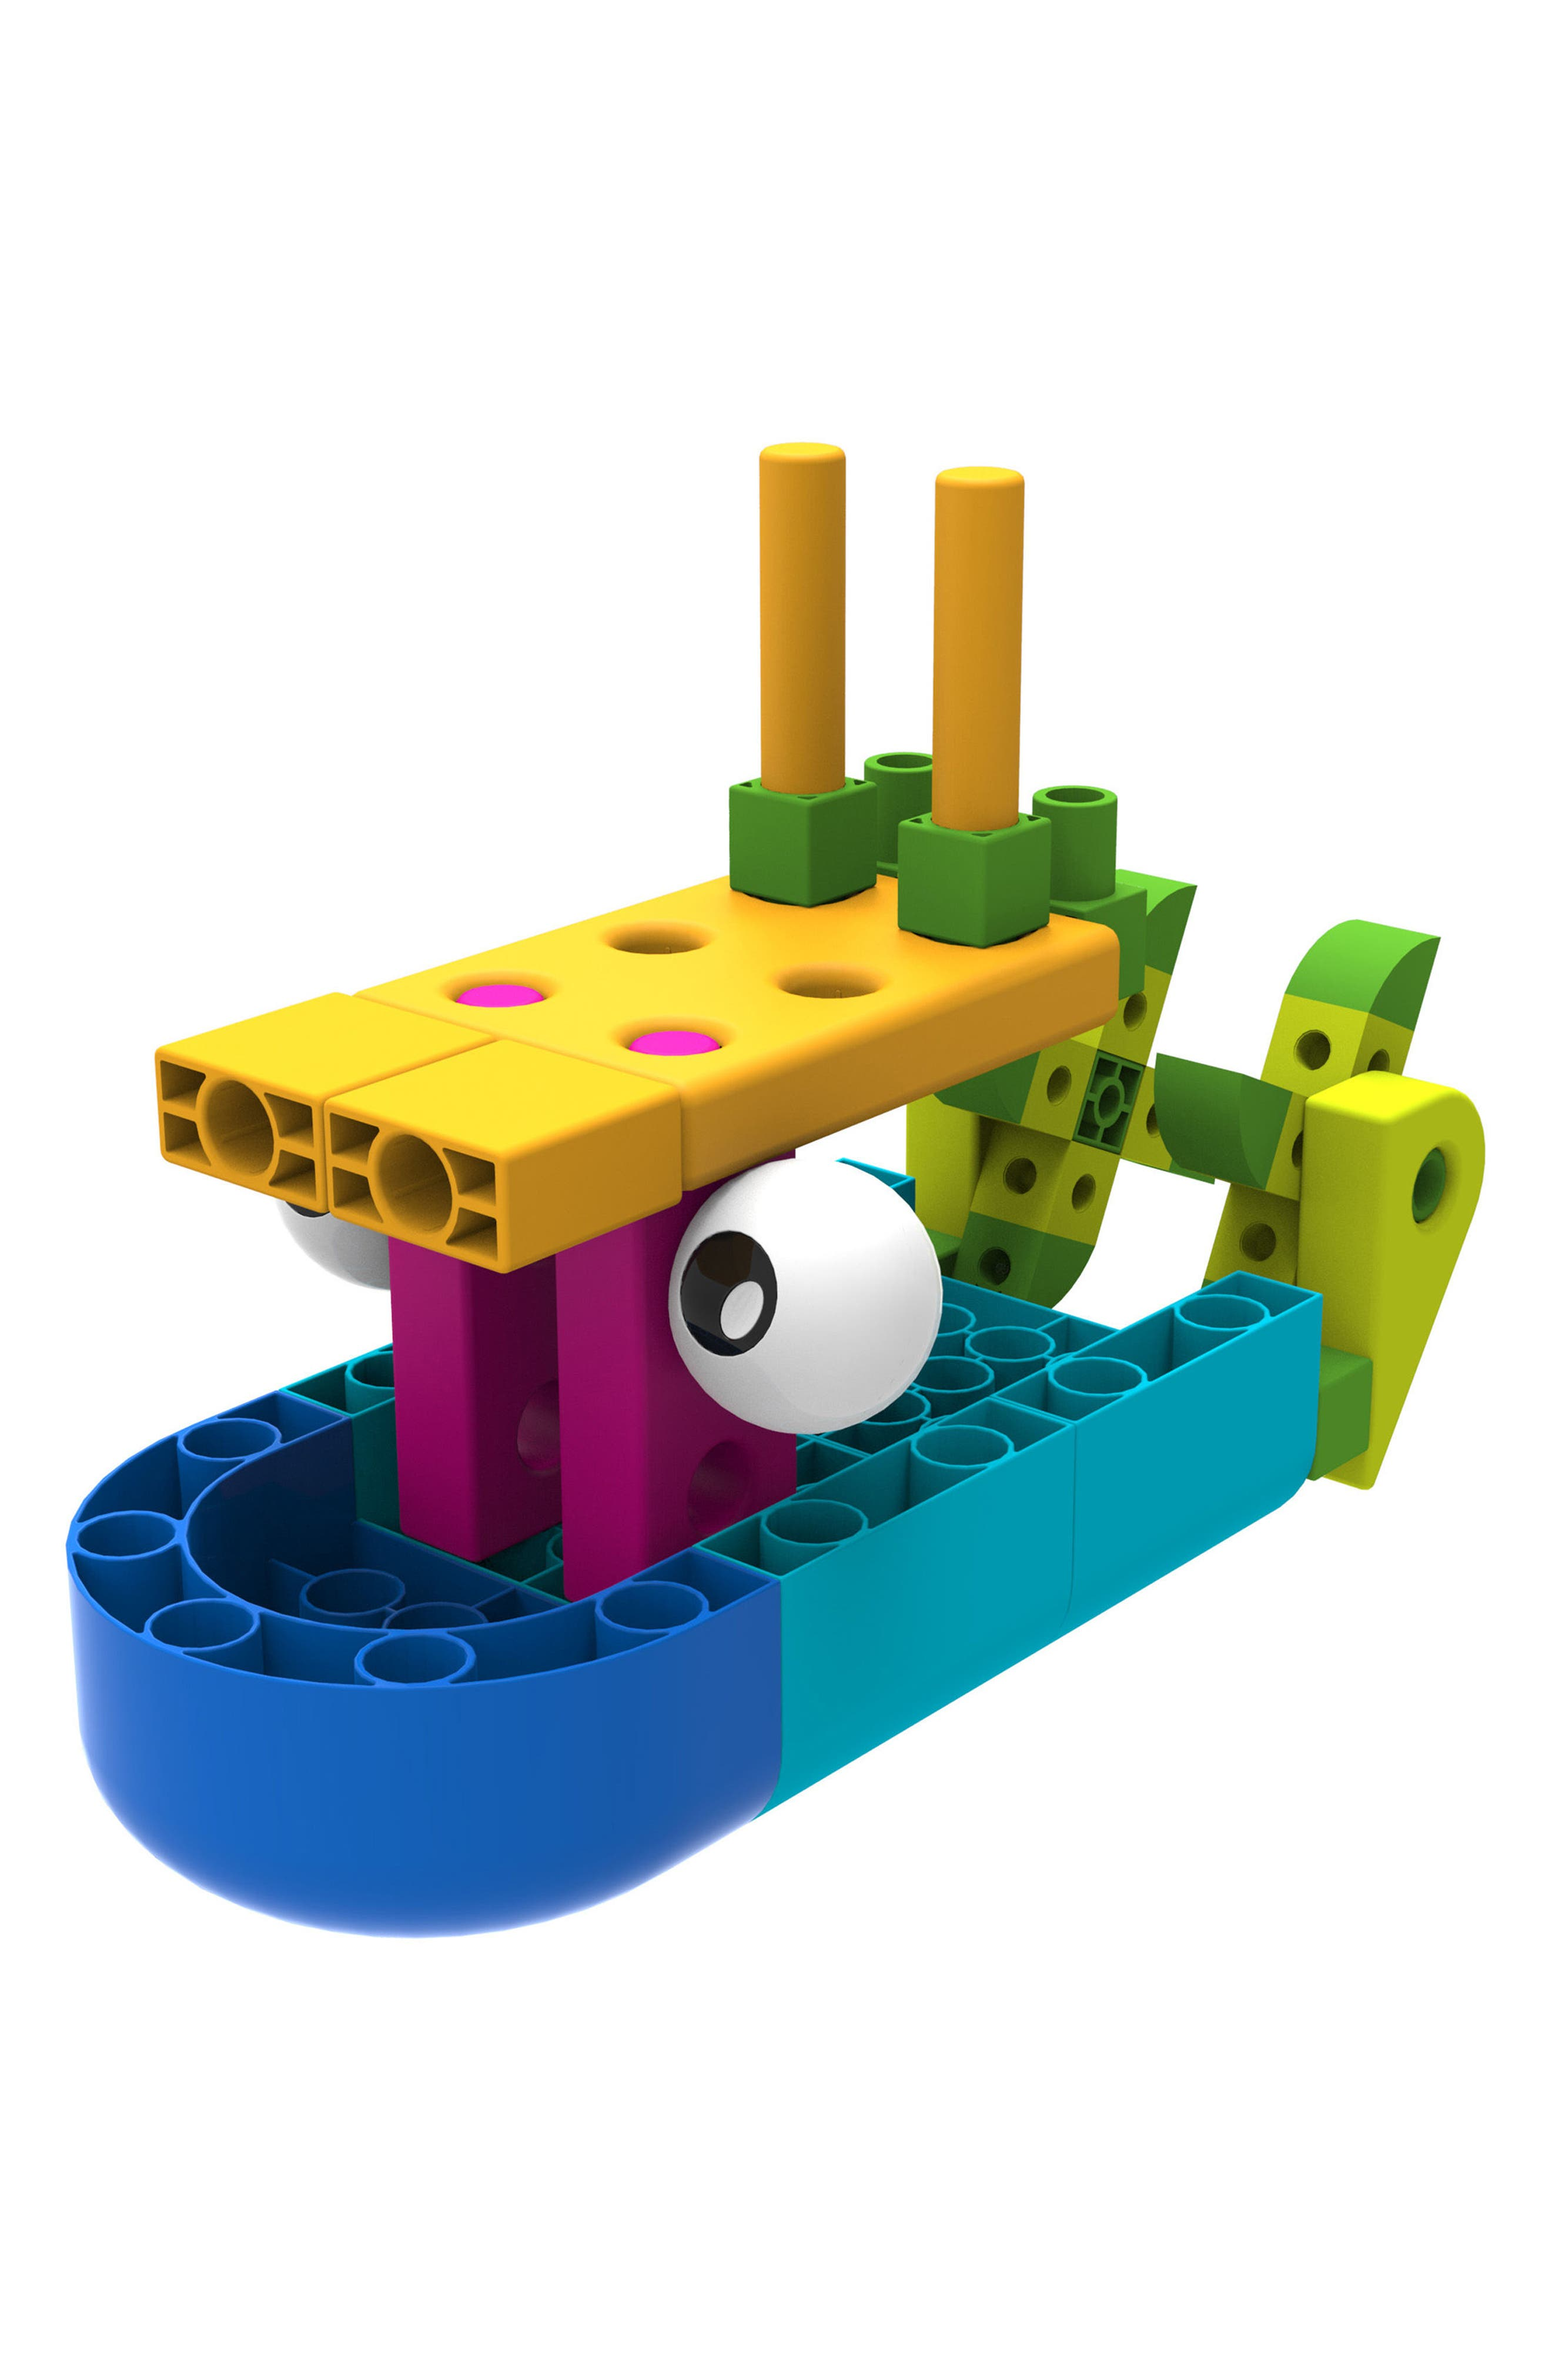 Boat Engineer Kit with Storybook,                             Alternate thumbnail 6, color,                             Multi